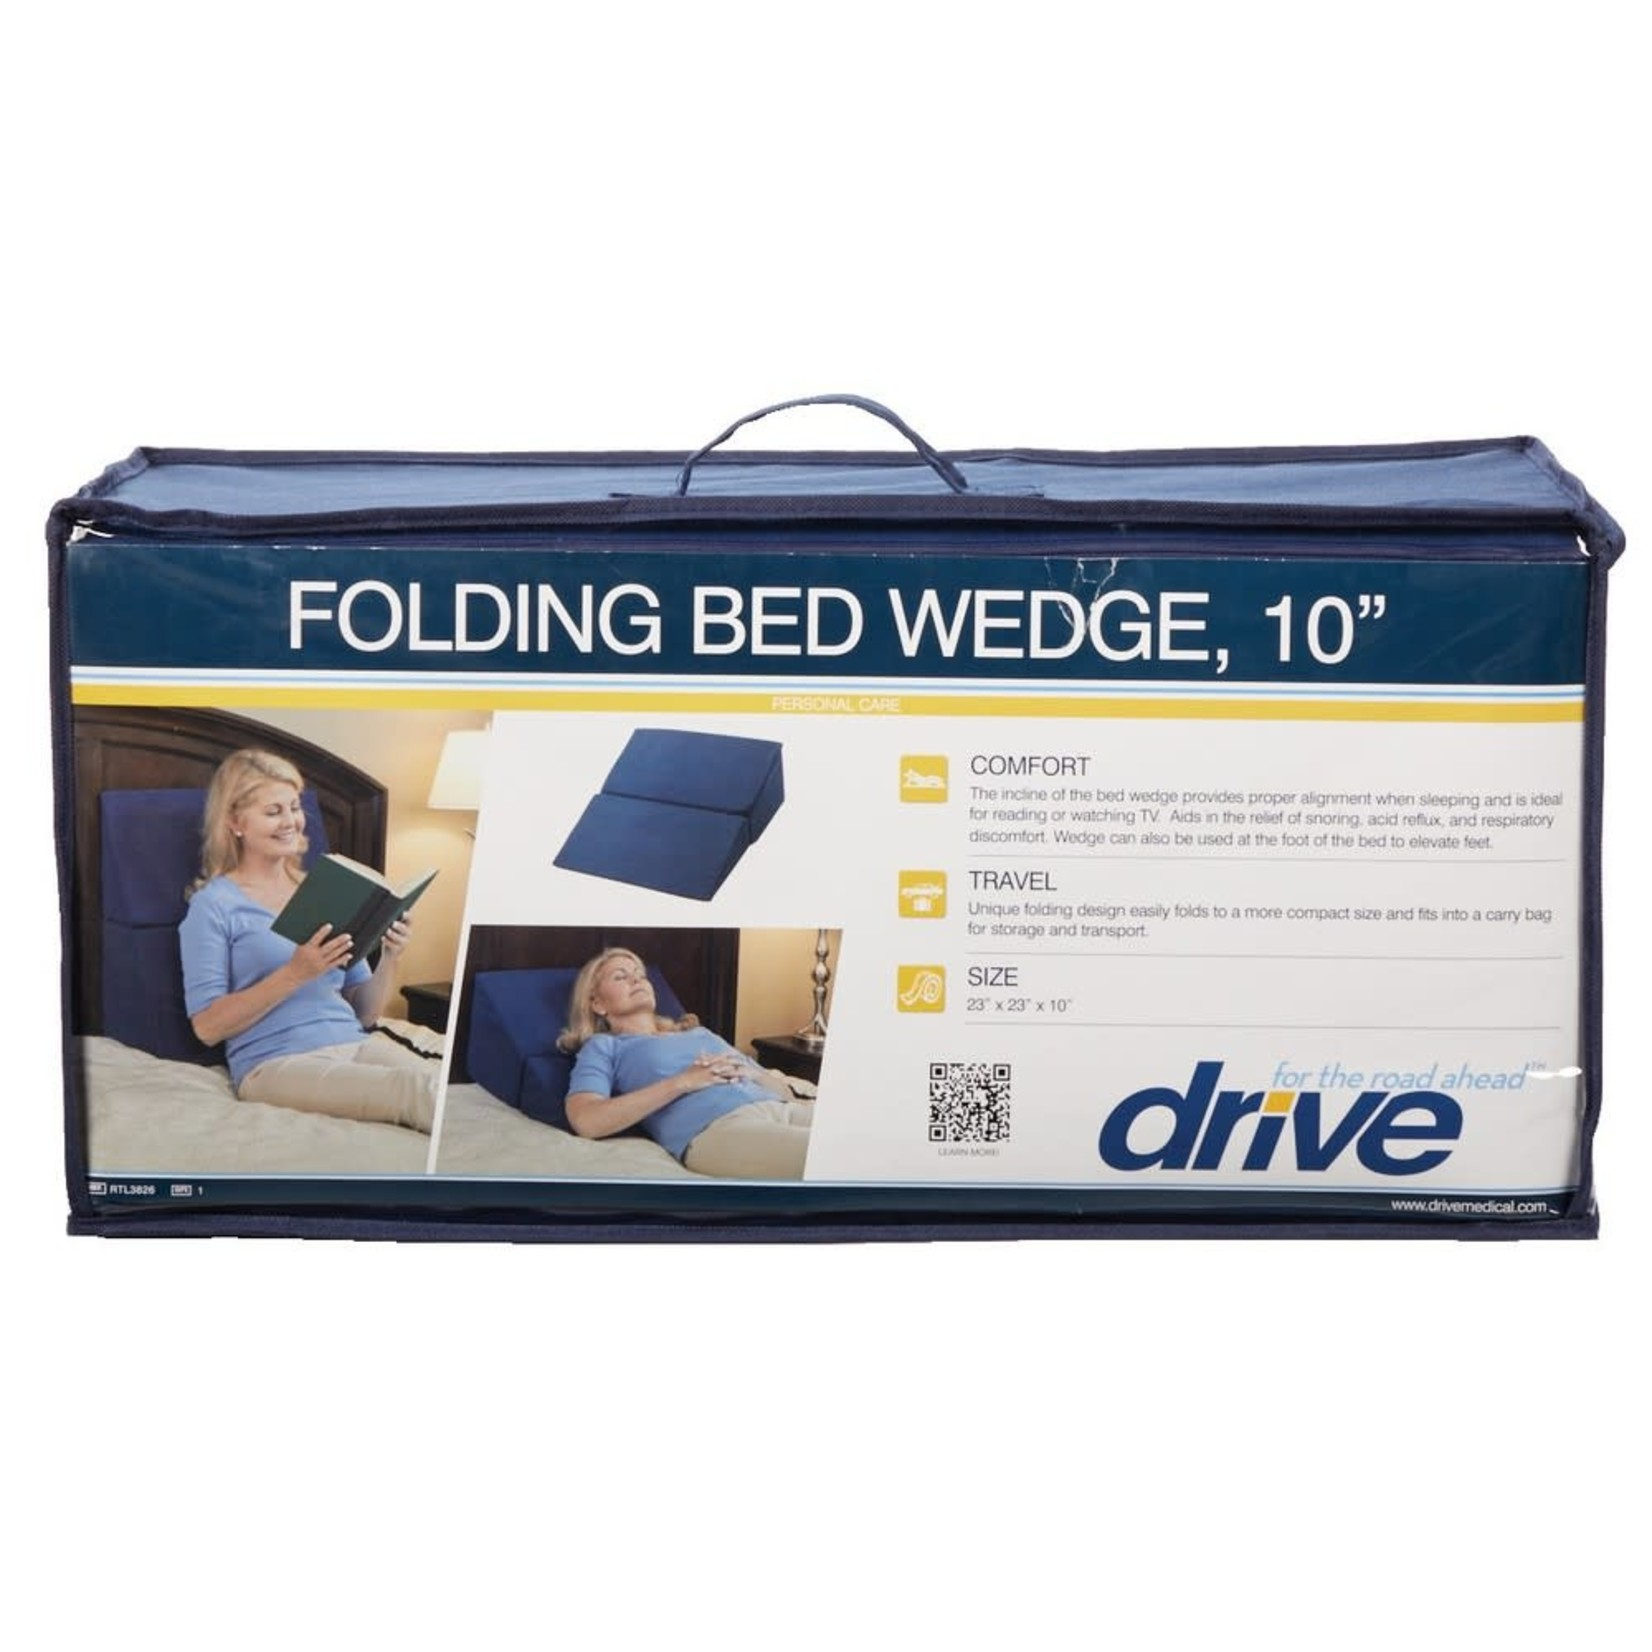 Drive Bed Wedge - Folding